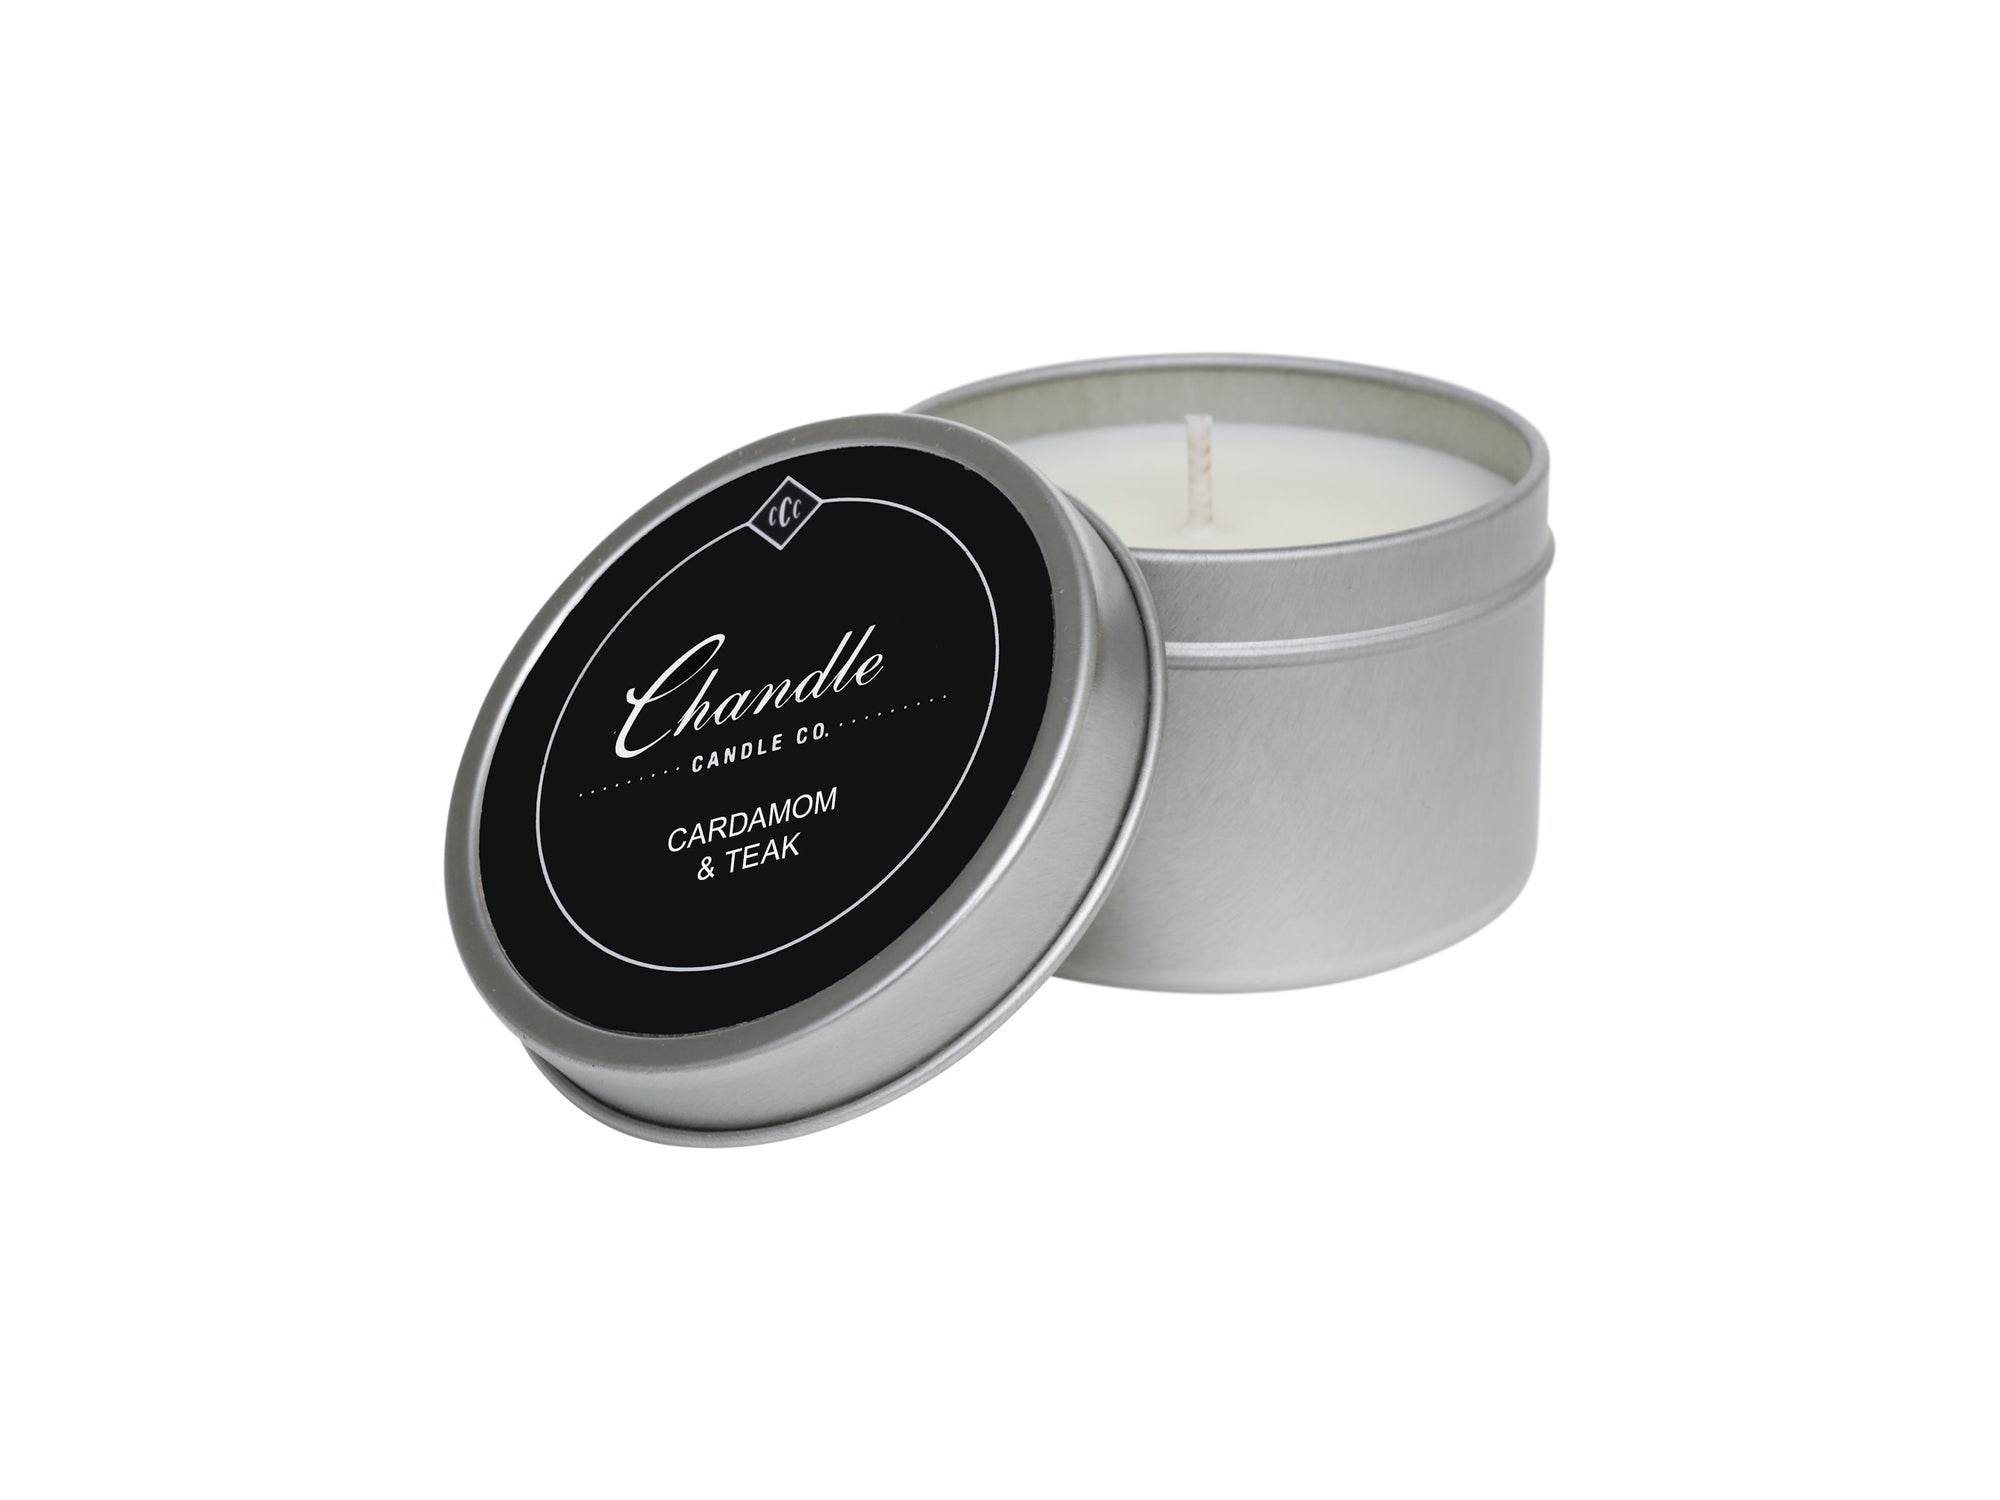 Cardamom & Teak scented Travel Tin Candle